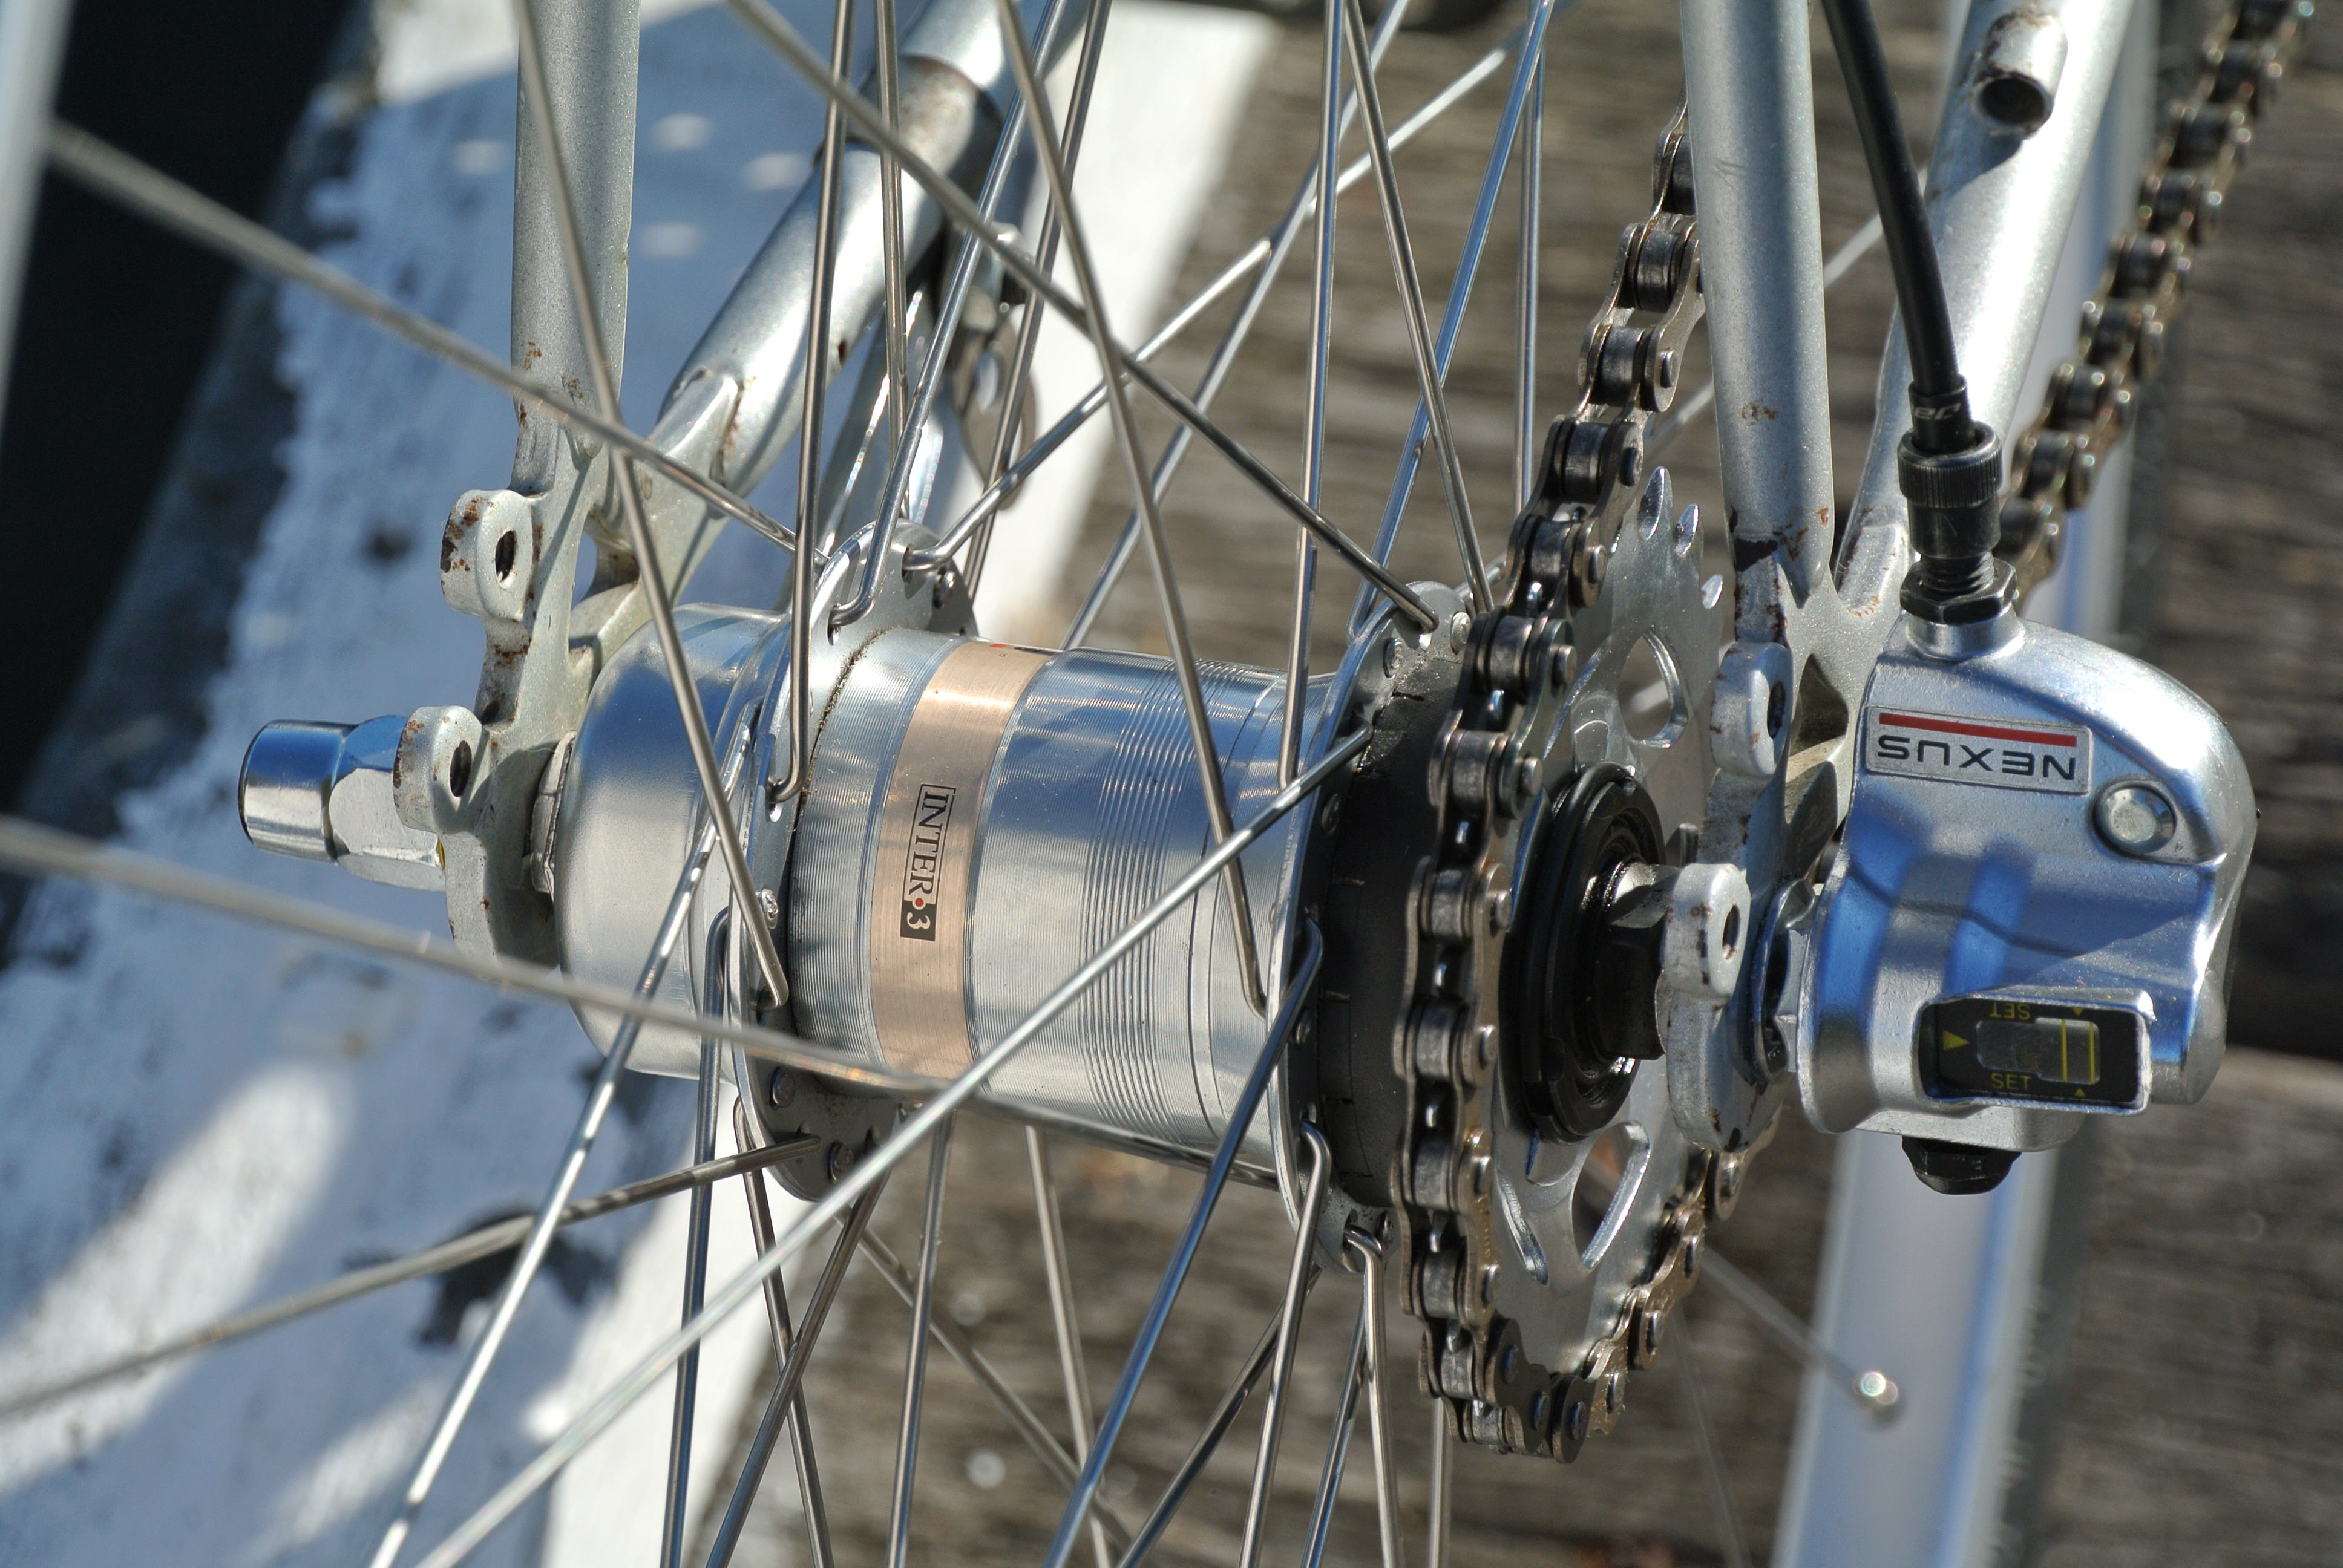 Bicycle Front Rim Diagram Wire Data Schema Scrprinciple Of Operation Electronic Circuits And Coaster Brakes A New Recyclist Wheel Rims 700c